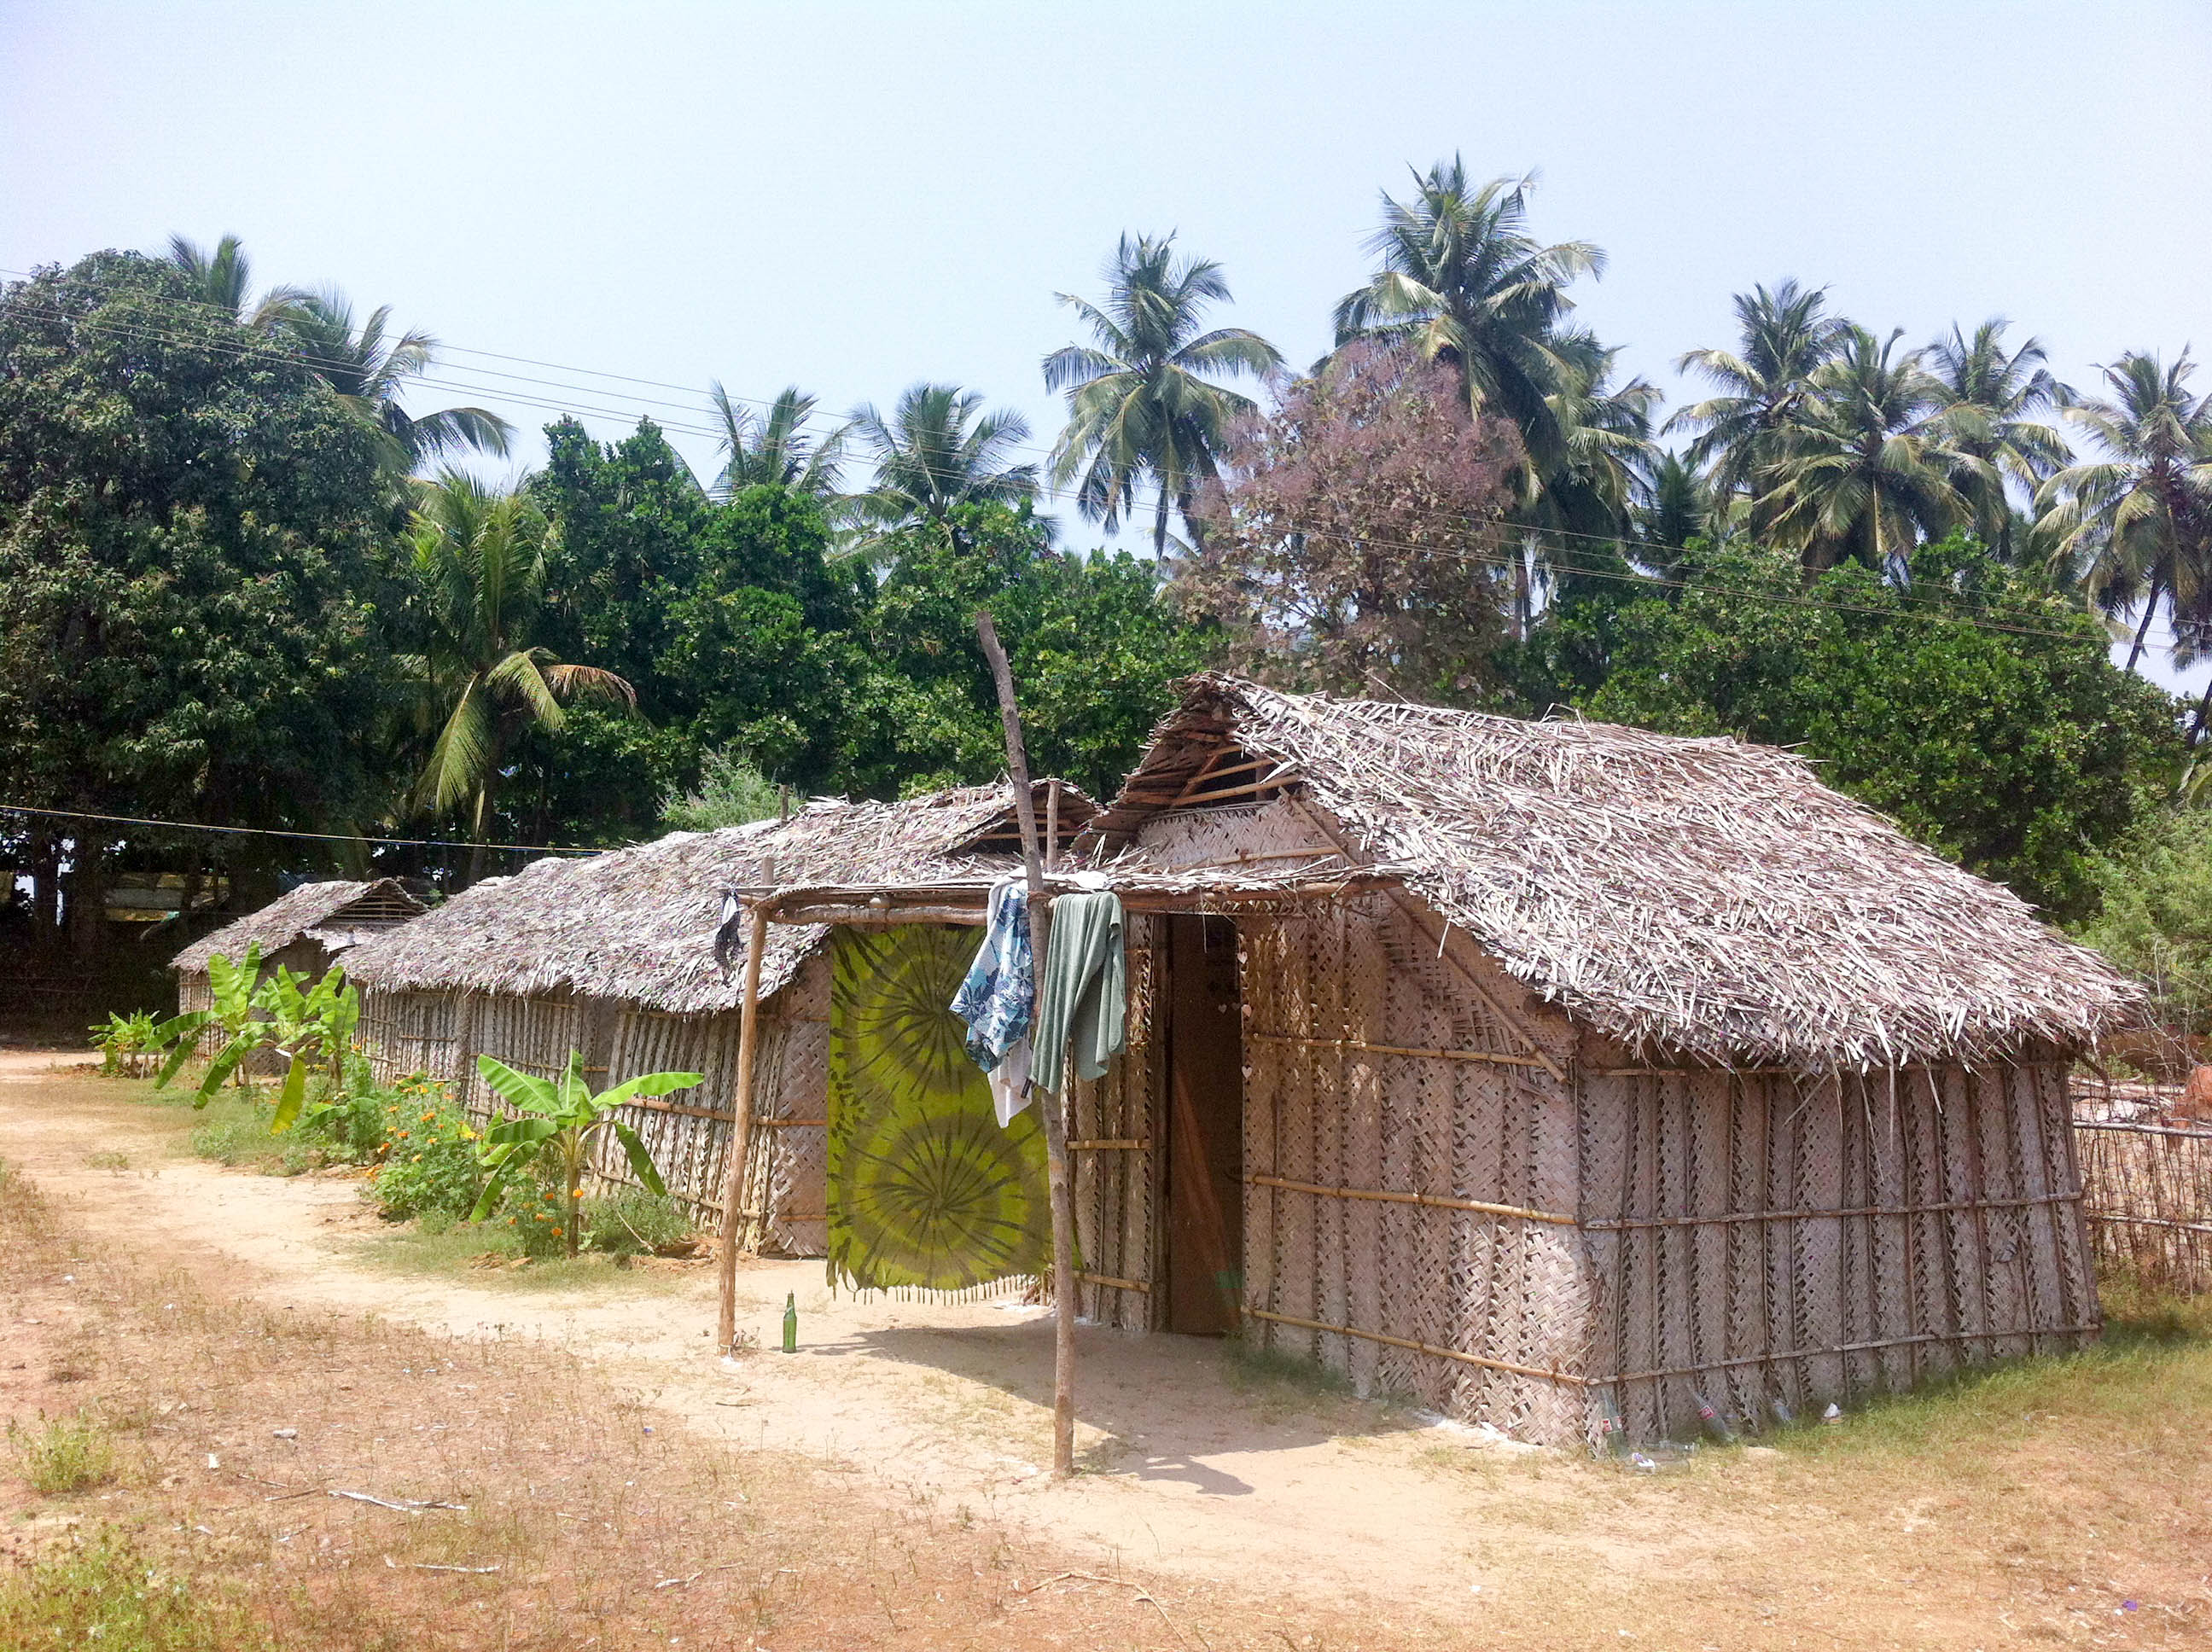 Hut on Kudle Beach, Gokarna